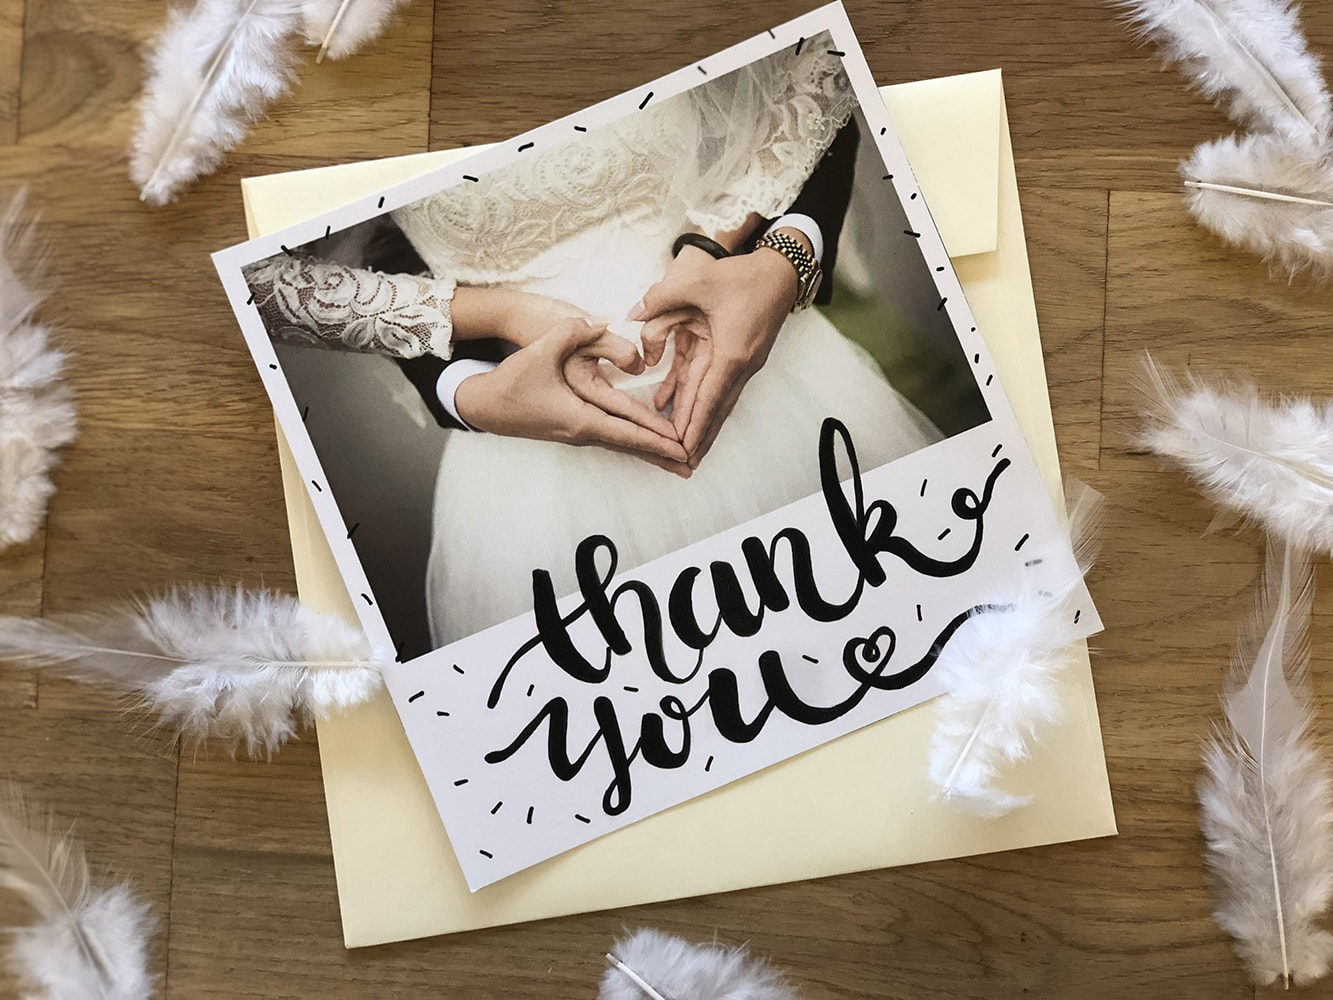 photo_paper_sublimation-thankyou-min-2-2